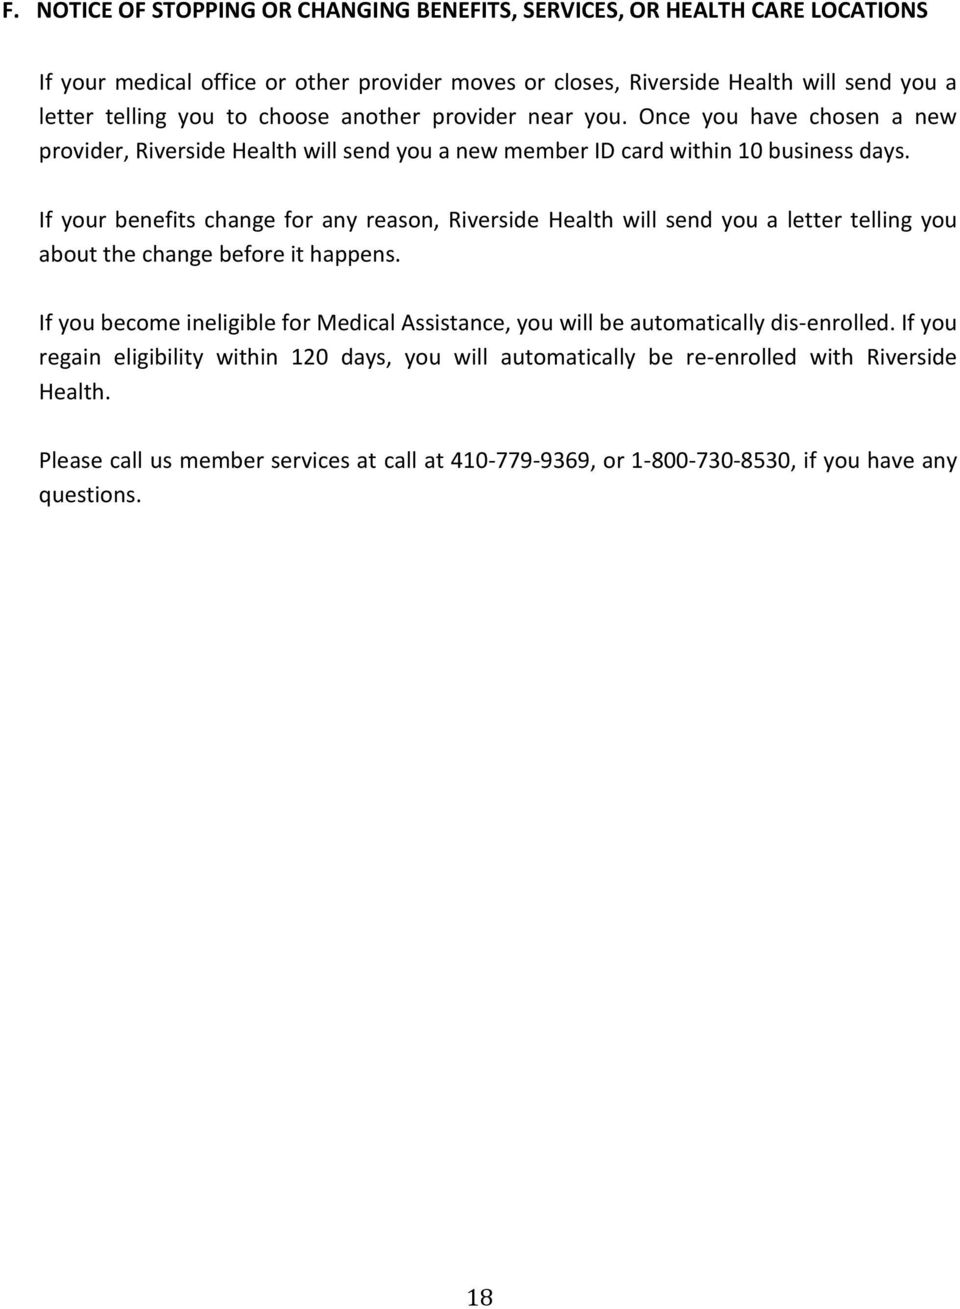 If your benefits change for any reason, Riverside Health will send you a letter telling you about the change before it happens.